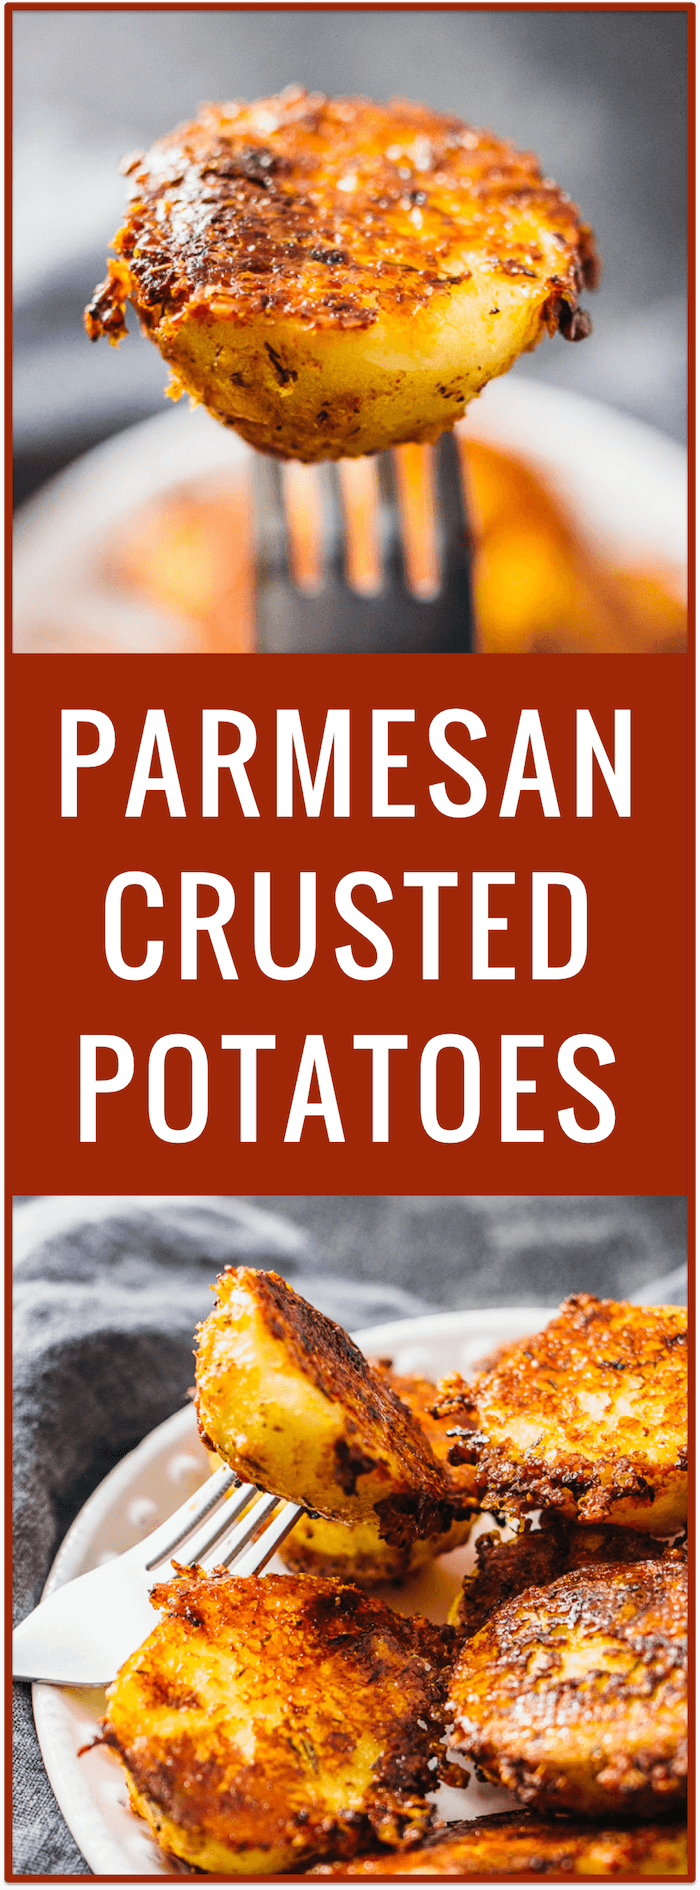 crispy parmesan crusted potatoes | crispy parmesan potatoes | parmesan upside down baked potatoes | parmesan roasted baby potatoes | easy simple appetizer recipe | side dish | party food